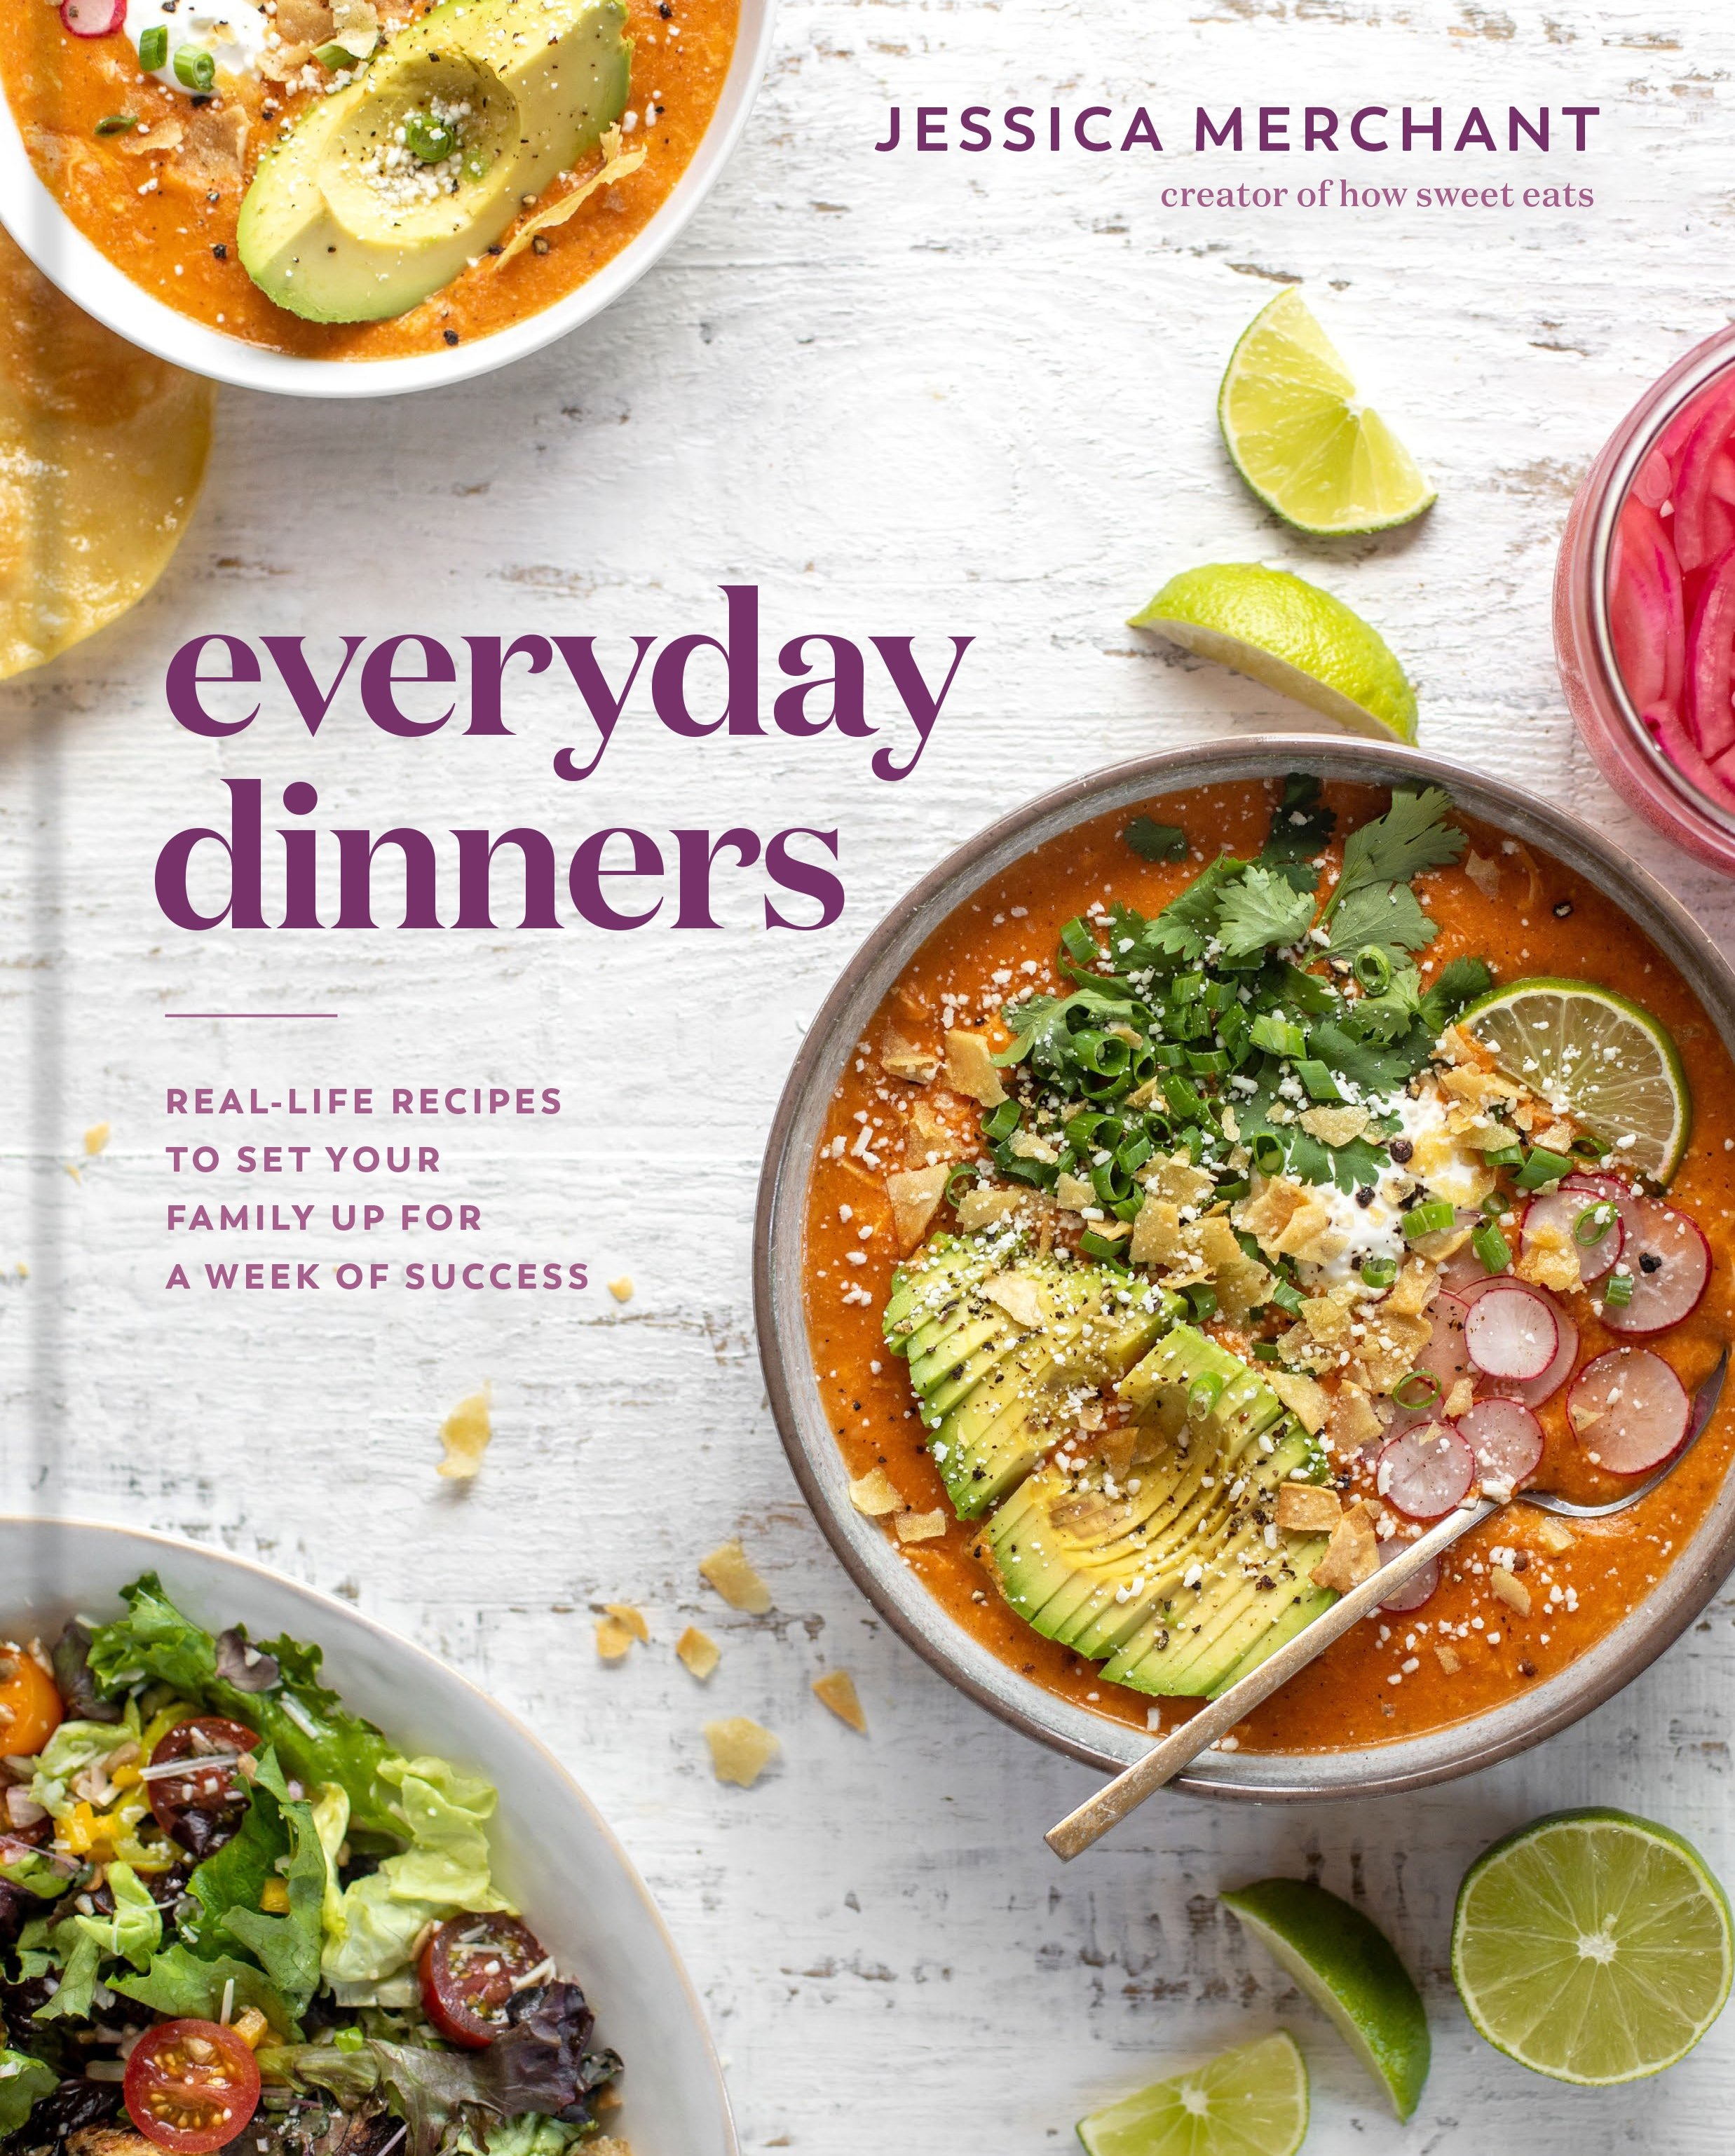 FREE everyday dinners BONUS COOKBOOK